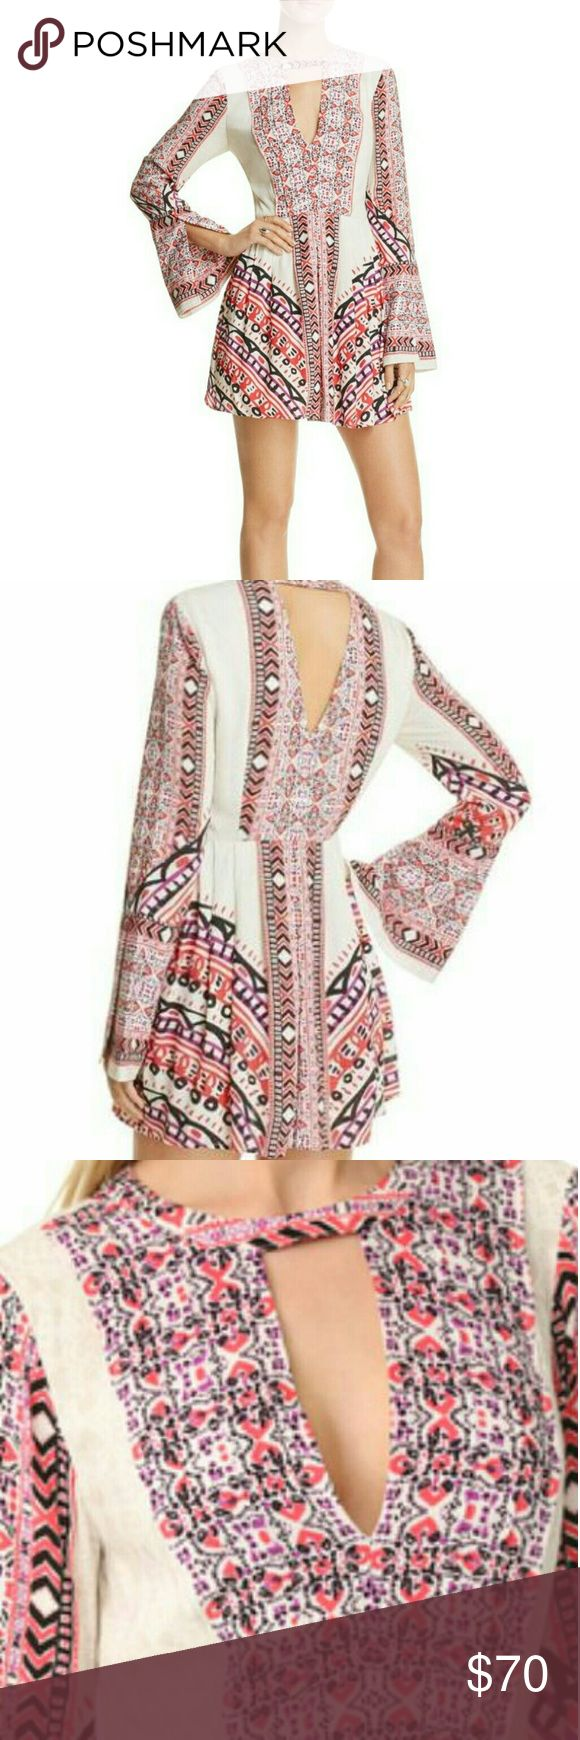 """Free People Tegan Border-Print Mini Dress 10 Ivory Exuding an eclectic, artisanal vibe, Free People's festival-ready mini dress indulges your inner boho babe with a collage of festive tile prints.  Fits true to size, order your normal size  Designed for a loose fit  Round neck, long bell sleeves, slit cuffs, bust cutout  Pleated bib and skirt, concealed side zip closure  Two side slit pockets, button closure at nape, back cutout  Approx. 30"""" from back of neck to hem  Rayon  Machine wash or…"""